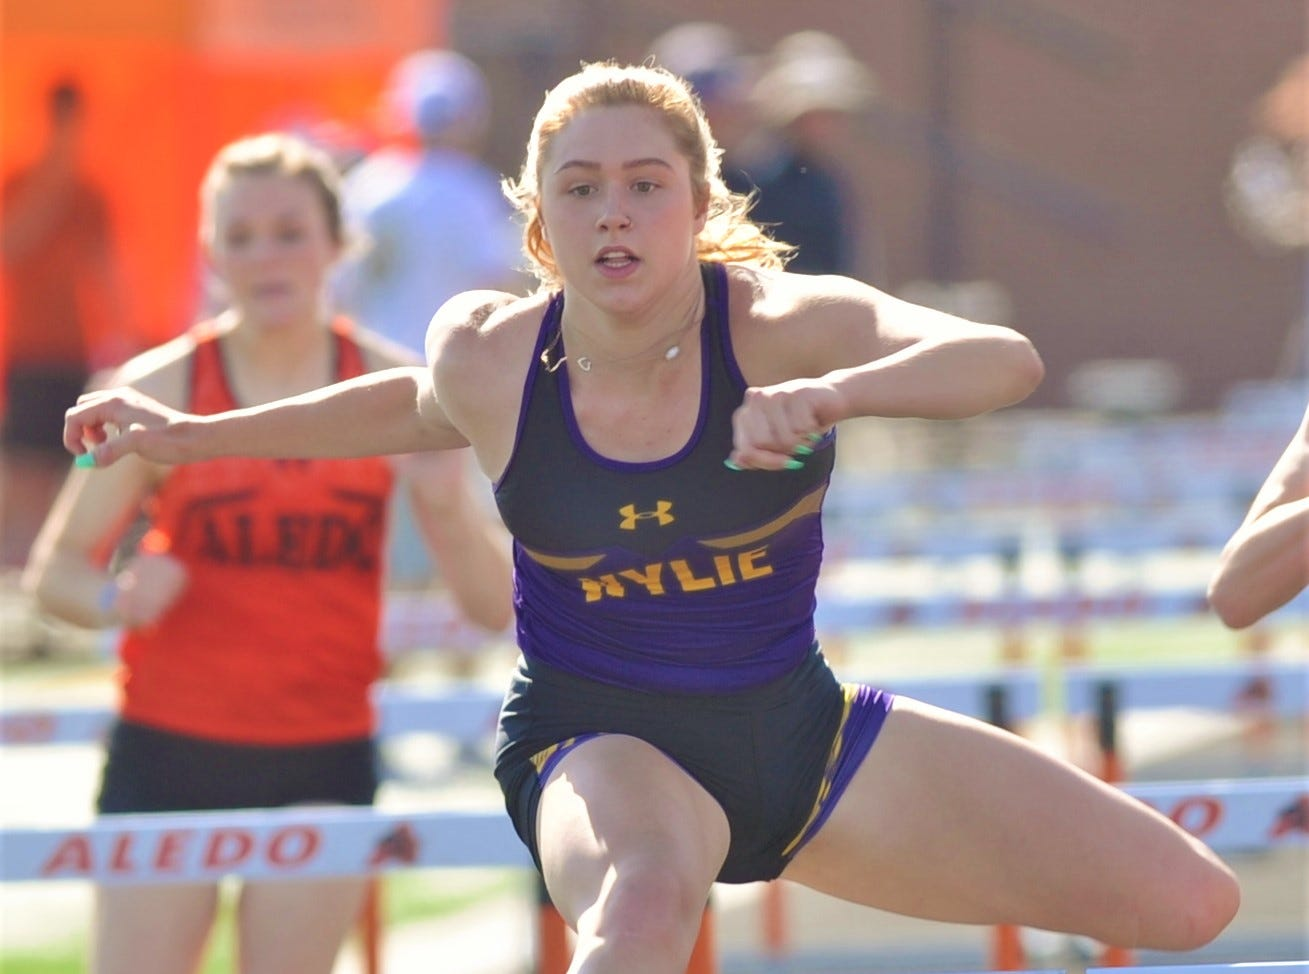 Wylie's Ambria Brekke clears a hurdle en route to winning the 100-meter hurdles at the District 4-5A track and field meet Thursday, April 3, 2019, at Aledo's Bearcat Stadium. She won the race in 16.91 seconds, while teammate Madison Latham was second (15.97).